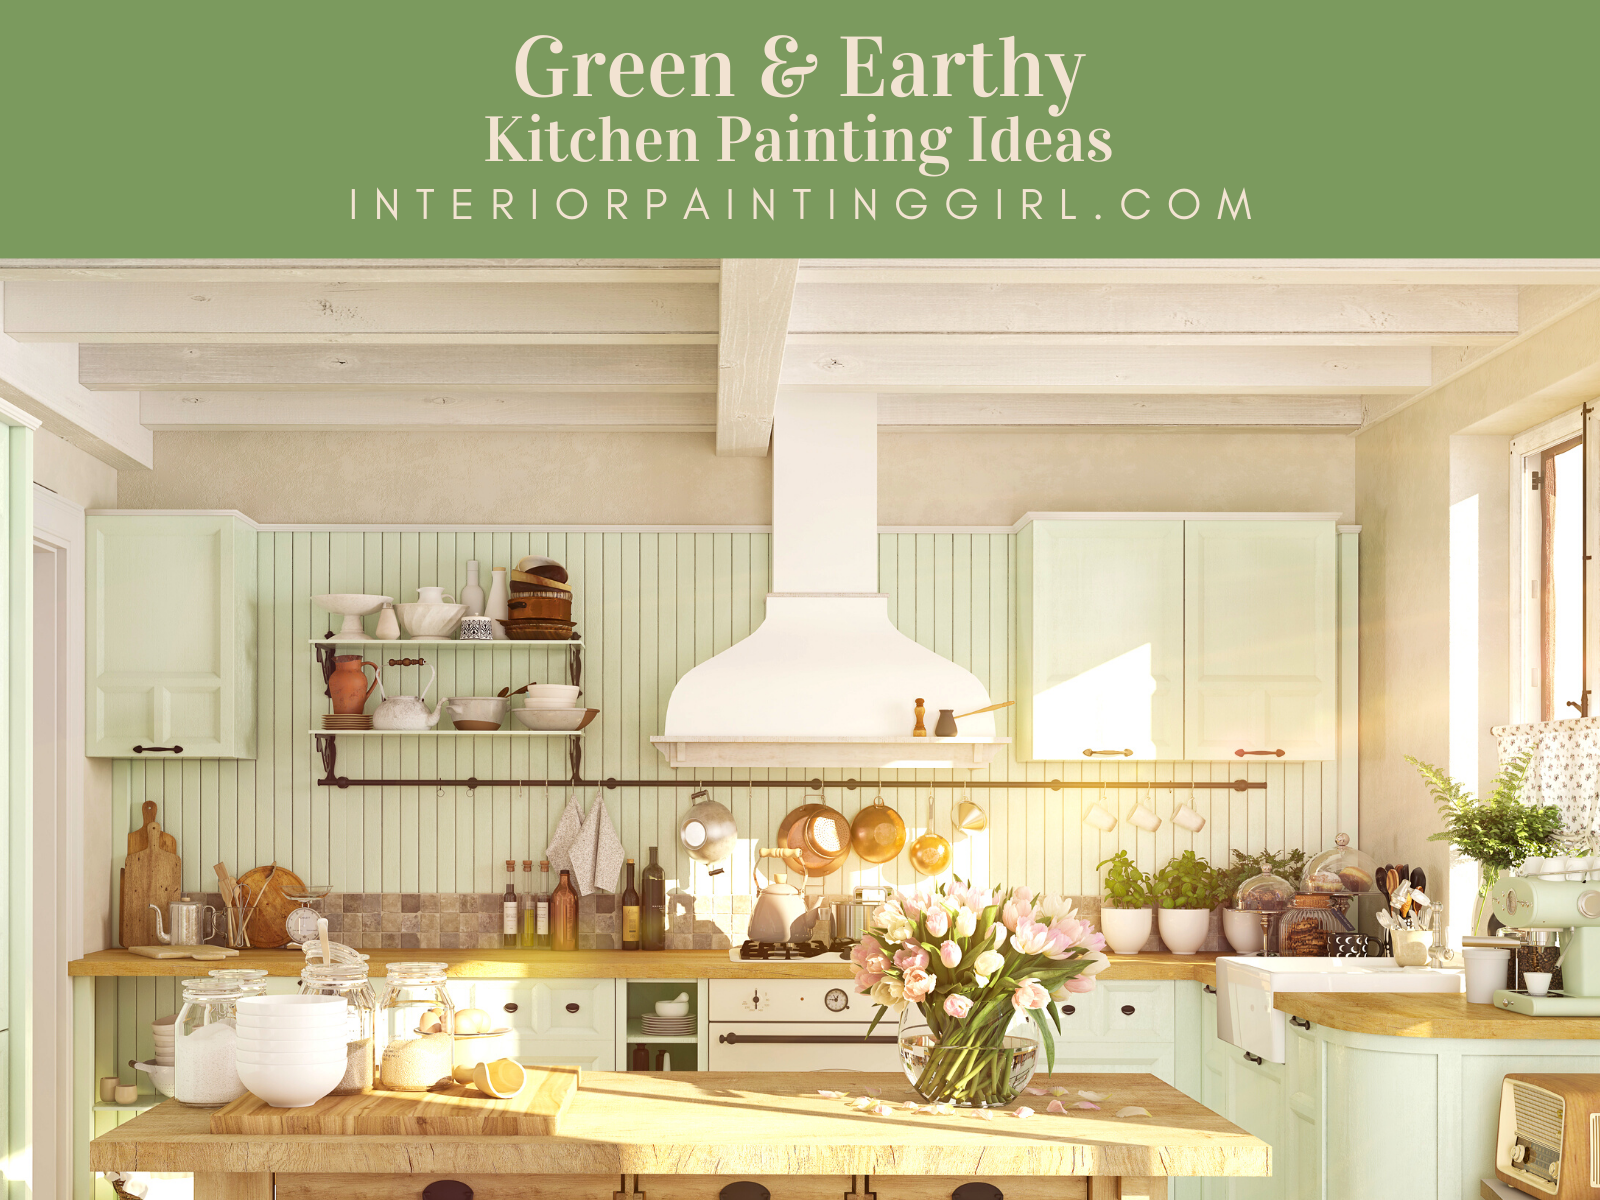 Kitchen Painting Ideas from That Interior Painting Girl